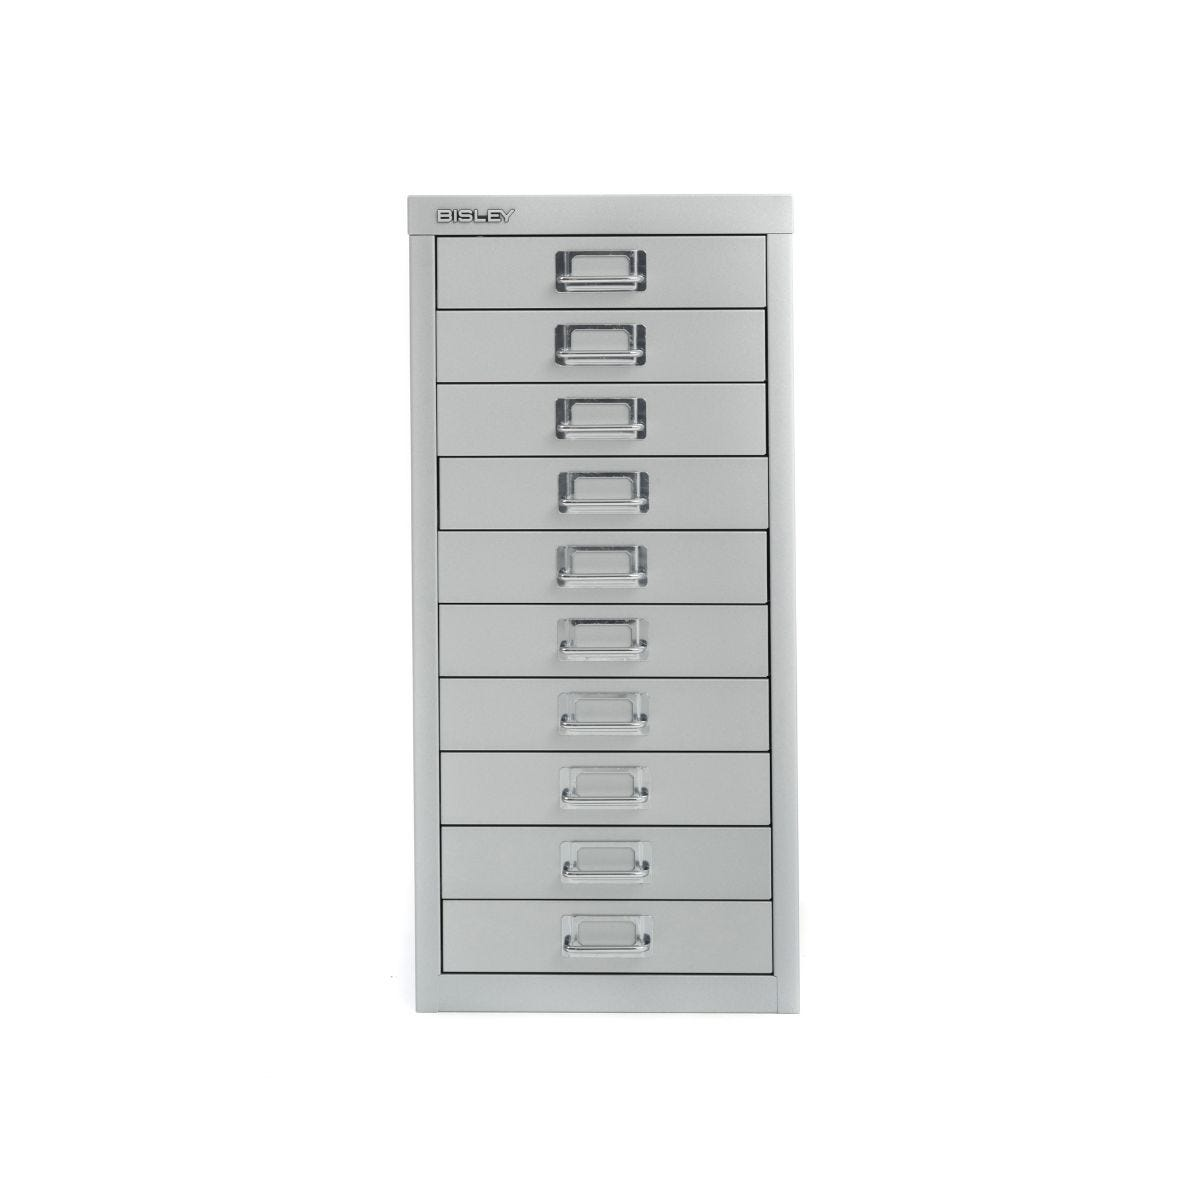 Metal Storage Cabinet With Drawers On Filing Cabinets Lockable Ryman